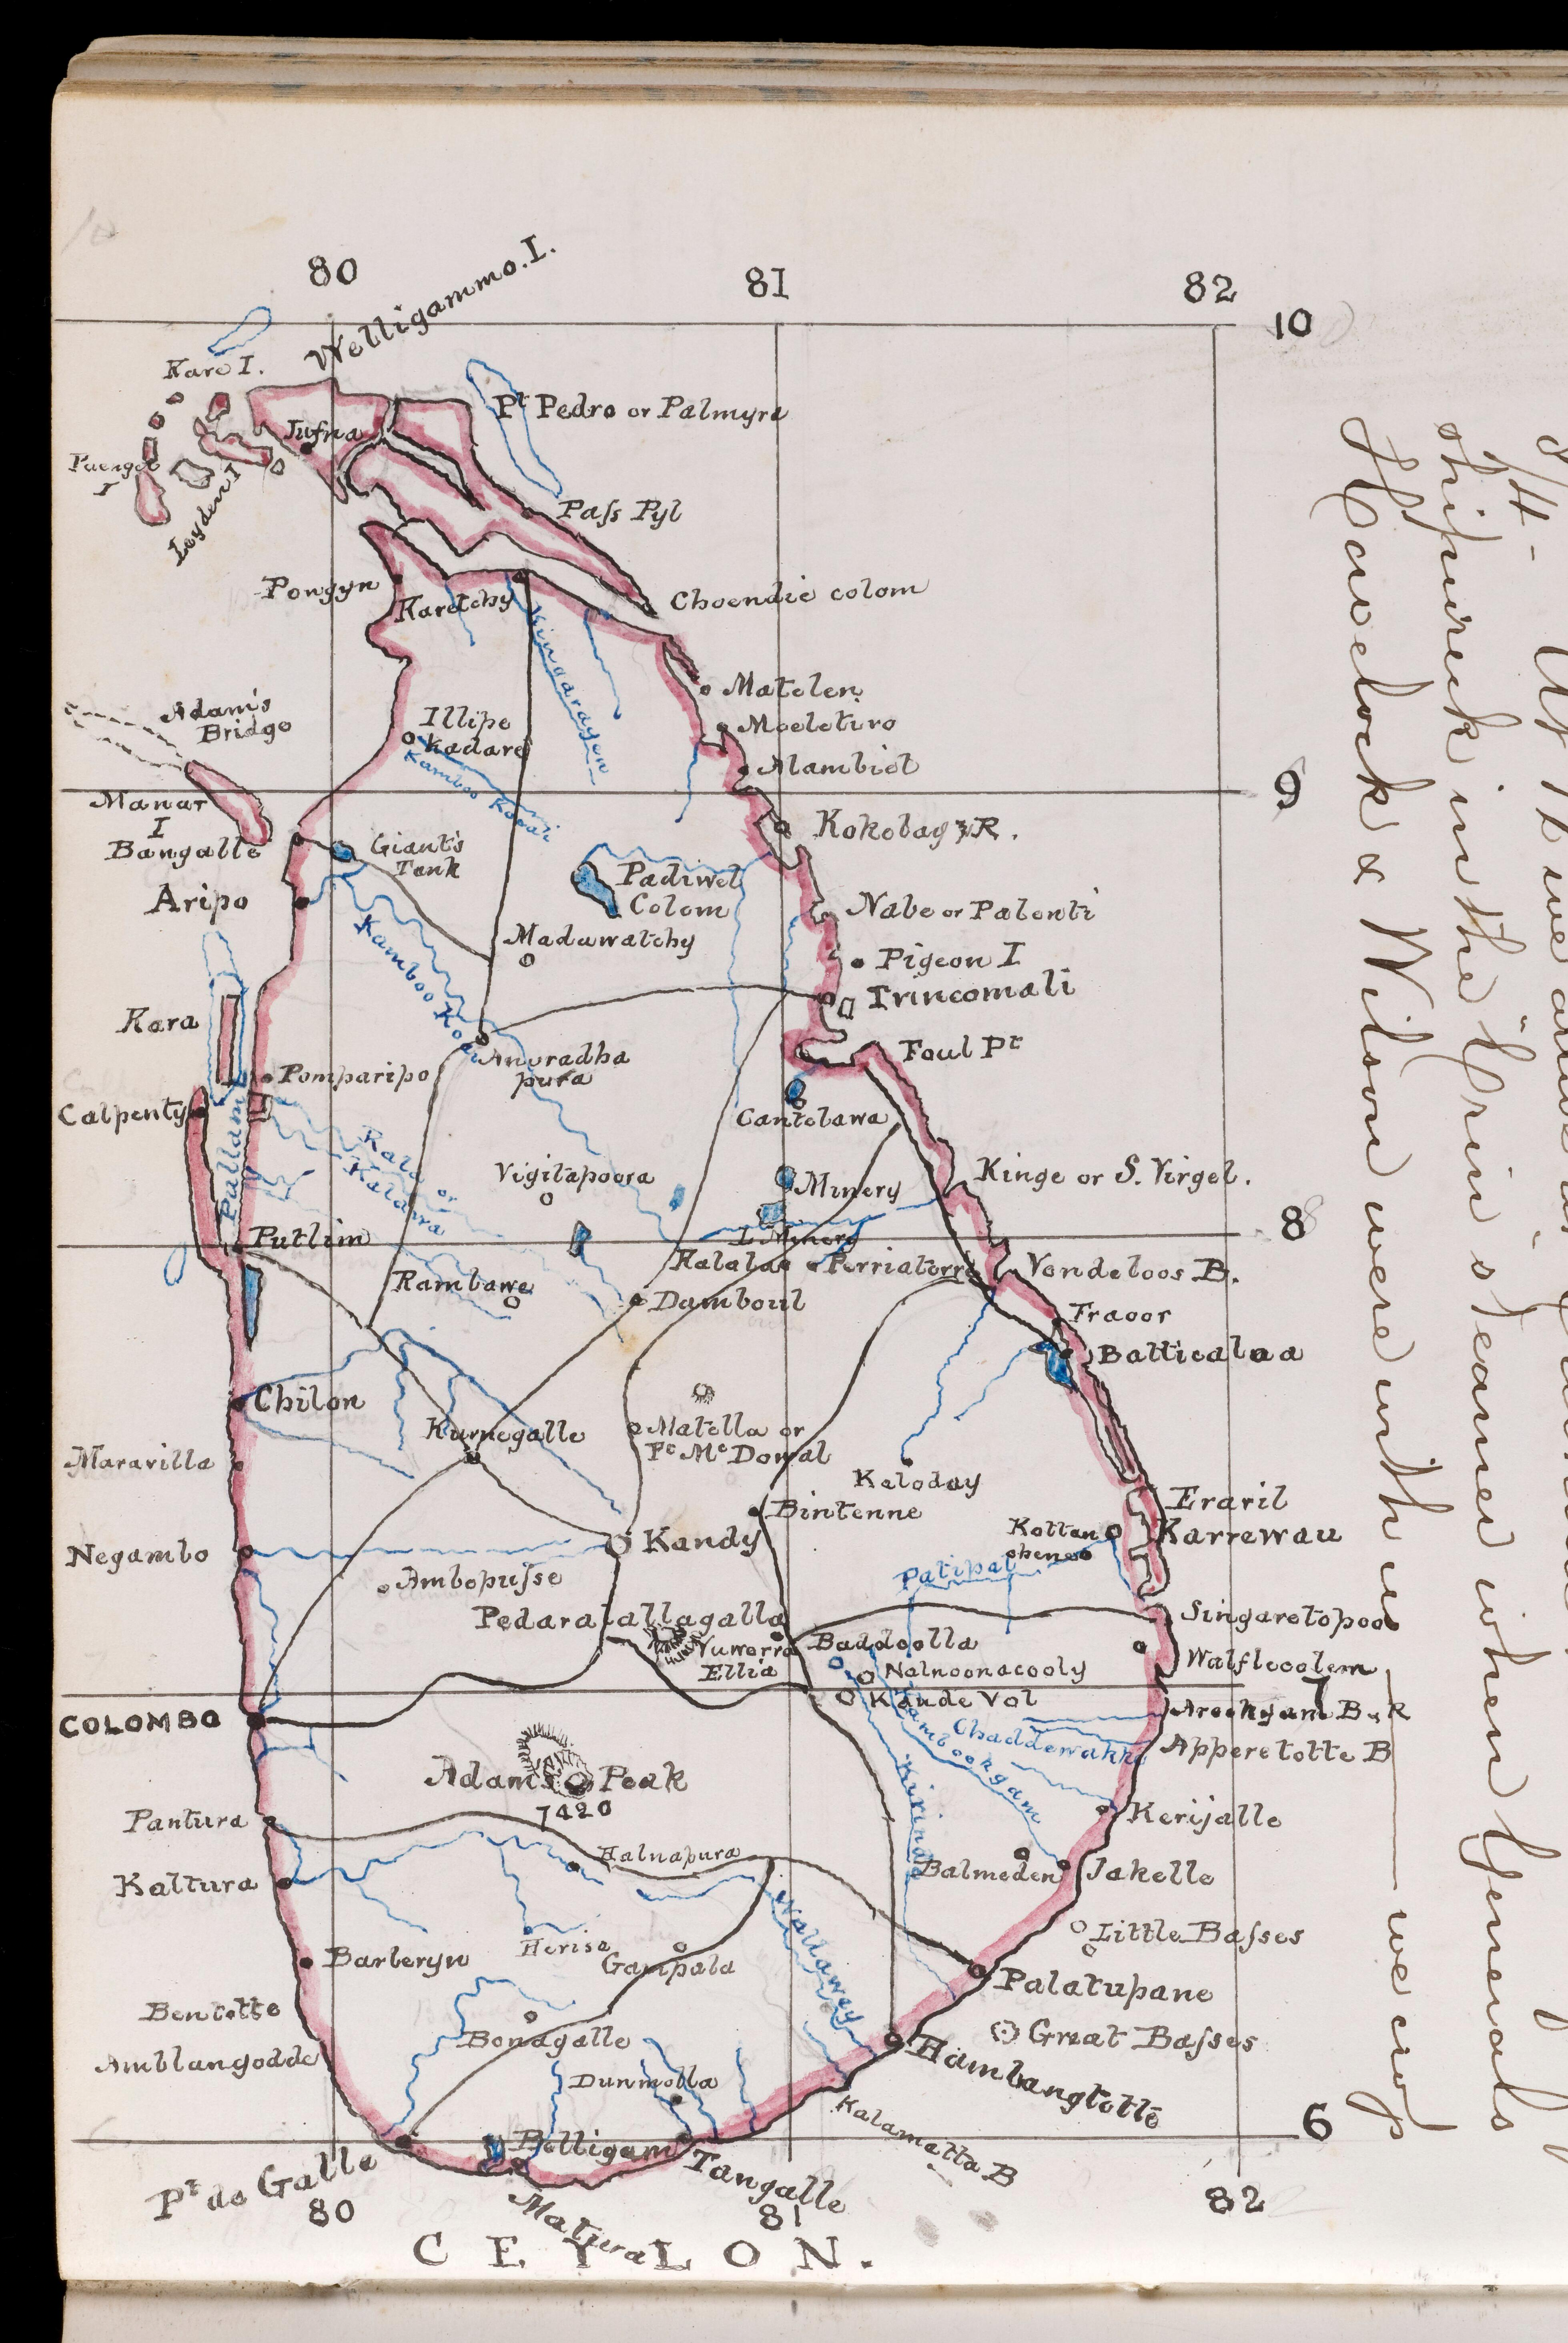 Mcript map of Ceylon (Sri Lanka) drawn using black, blue ... on tunis map, sumatra map, timbuktu map, bengal map, punjab map, moluccas map, canton map, south asia, malaysia map, china map, kiev map, ghana map, burma map, japan map, gujarat map, kabul map, damascus map, morocco map, singapore map, tibet map, congo africa located on map,